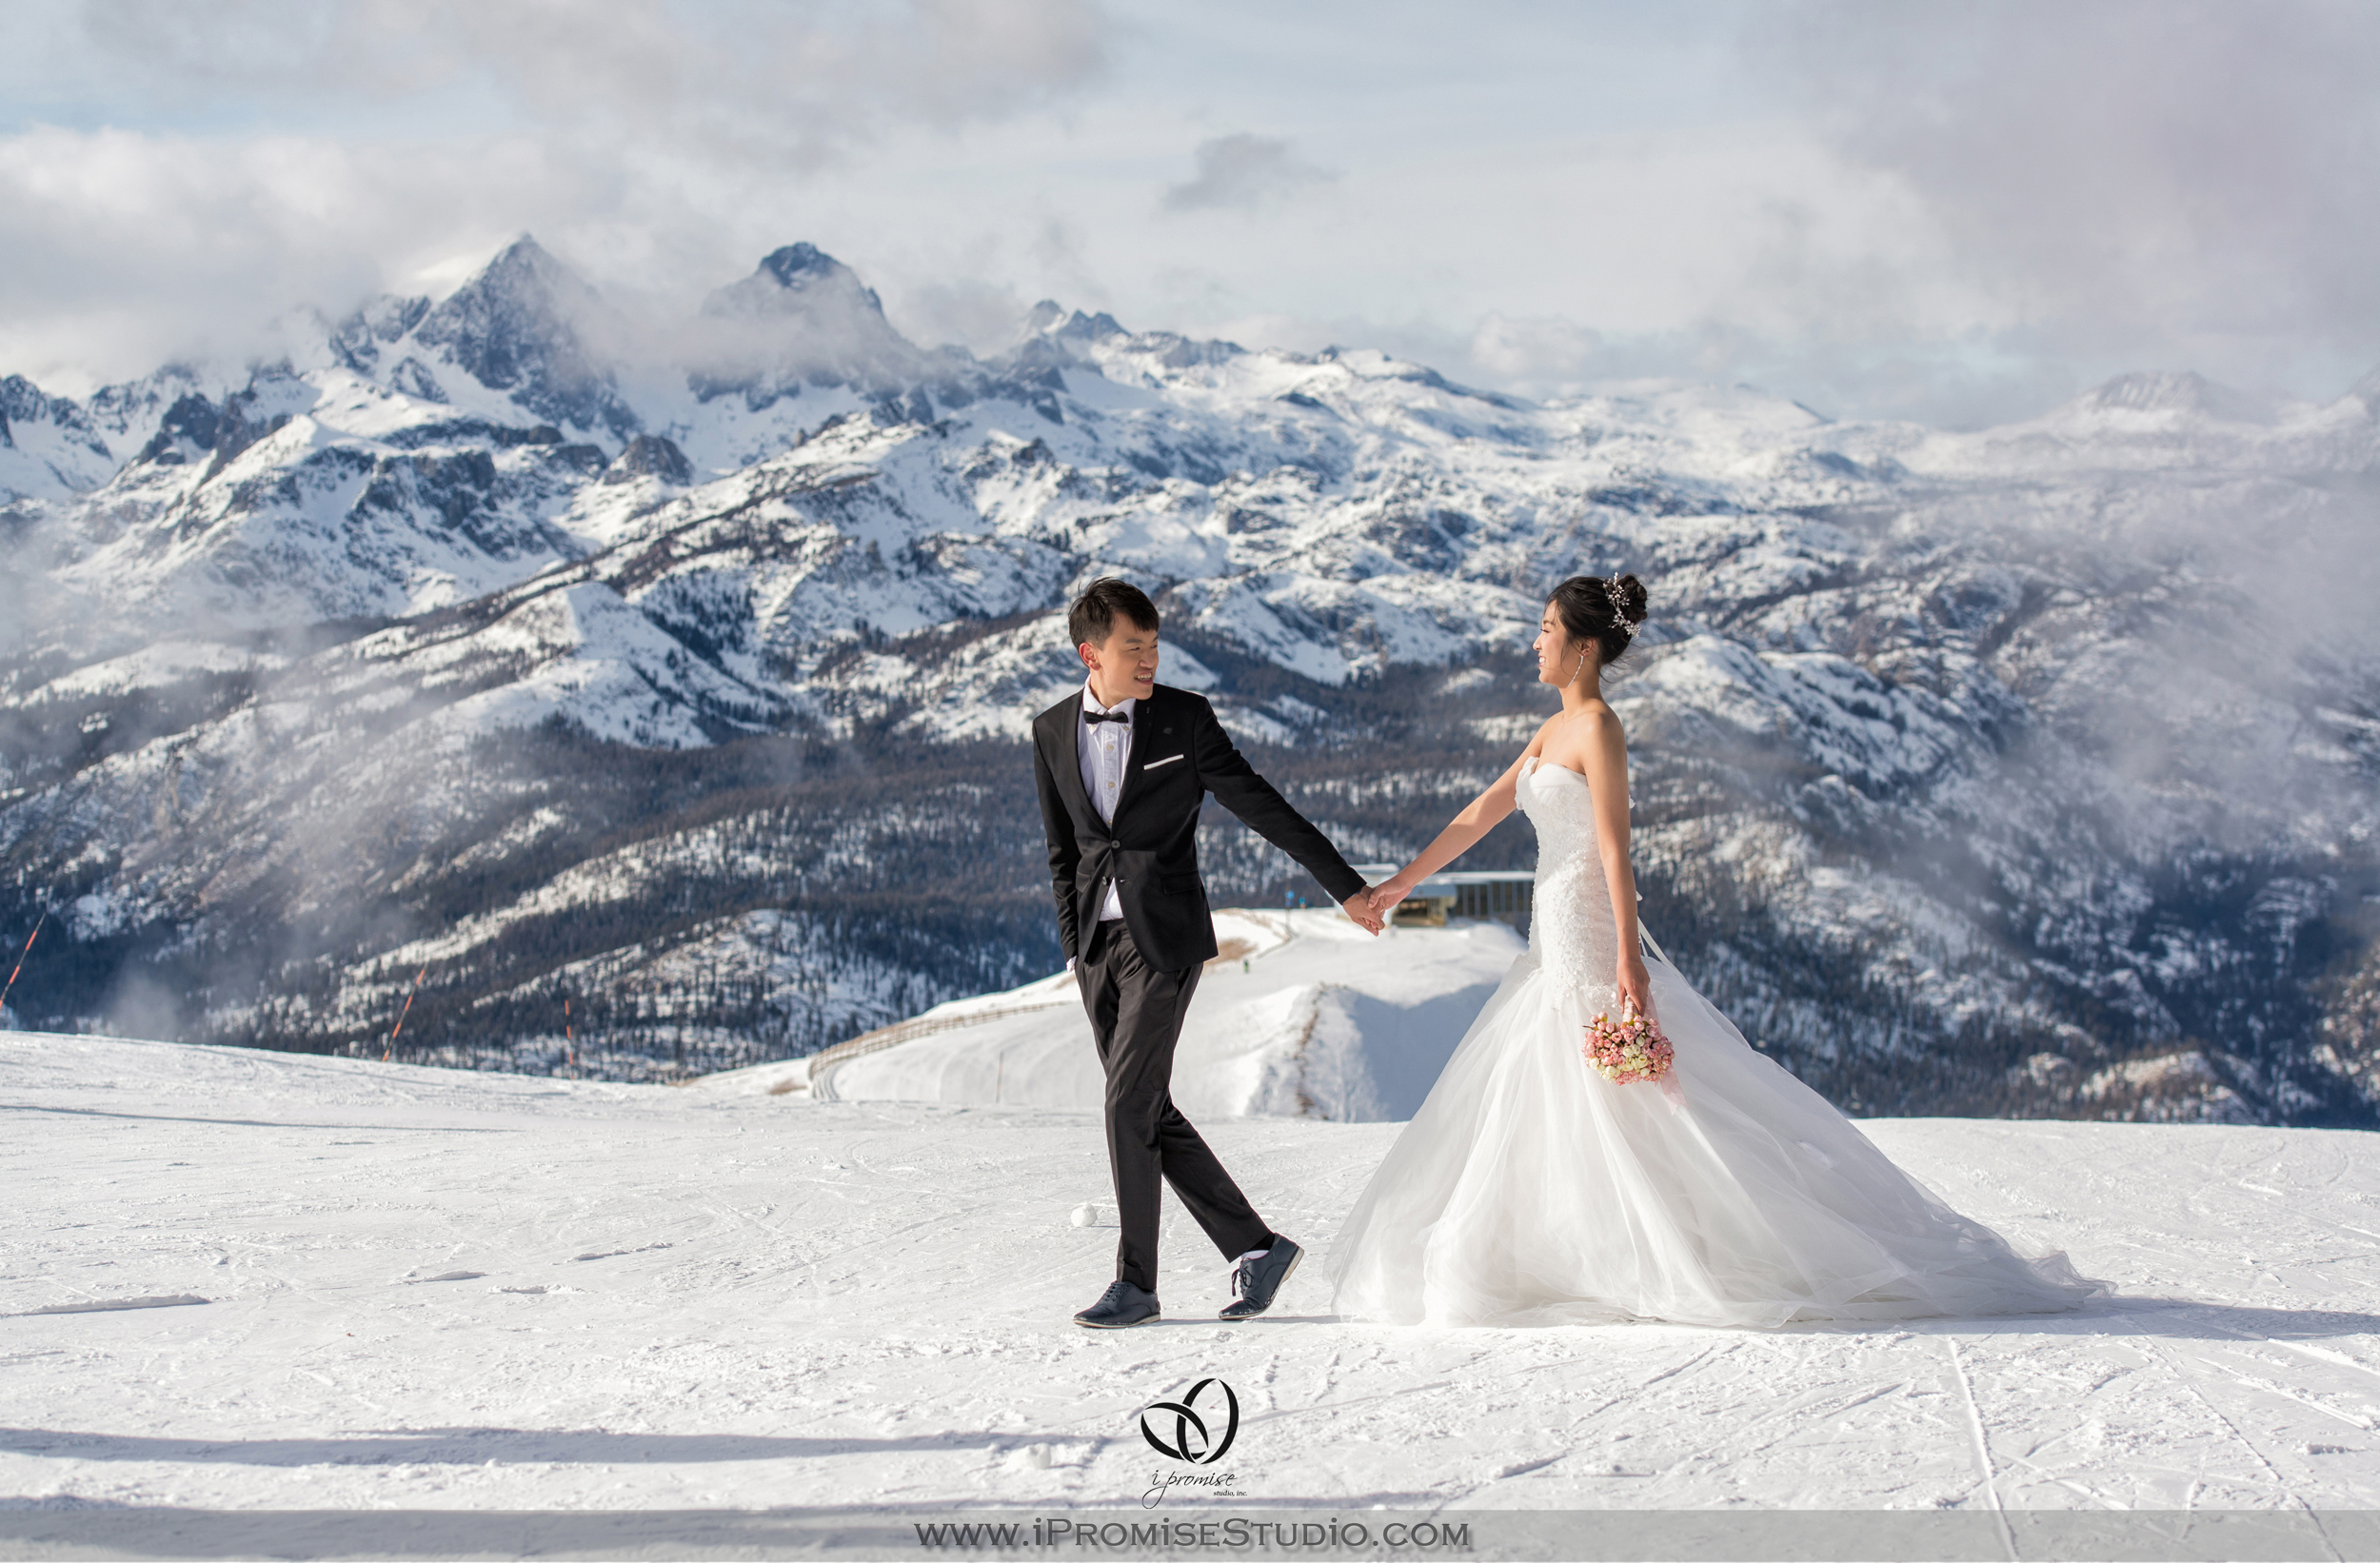 Mammoth Bigbear Lake Mountain  Snow Scene  engagement wedding 01.JPG